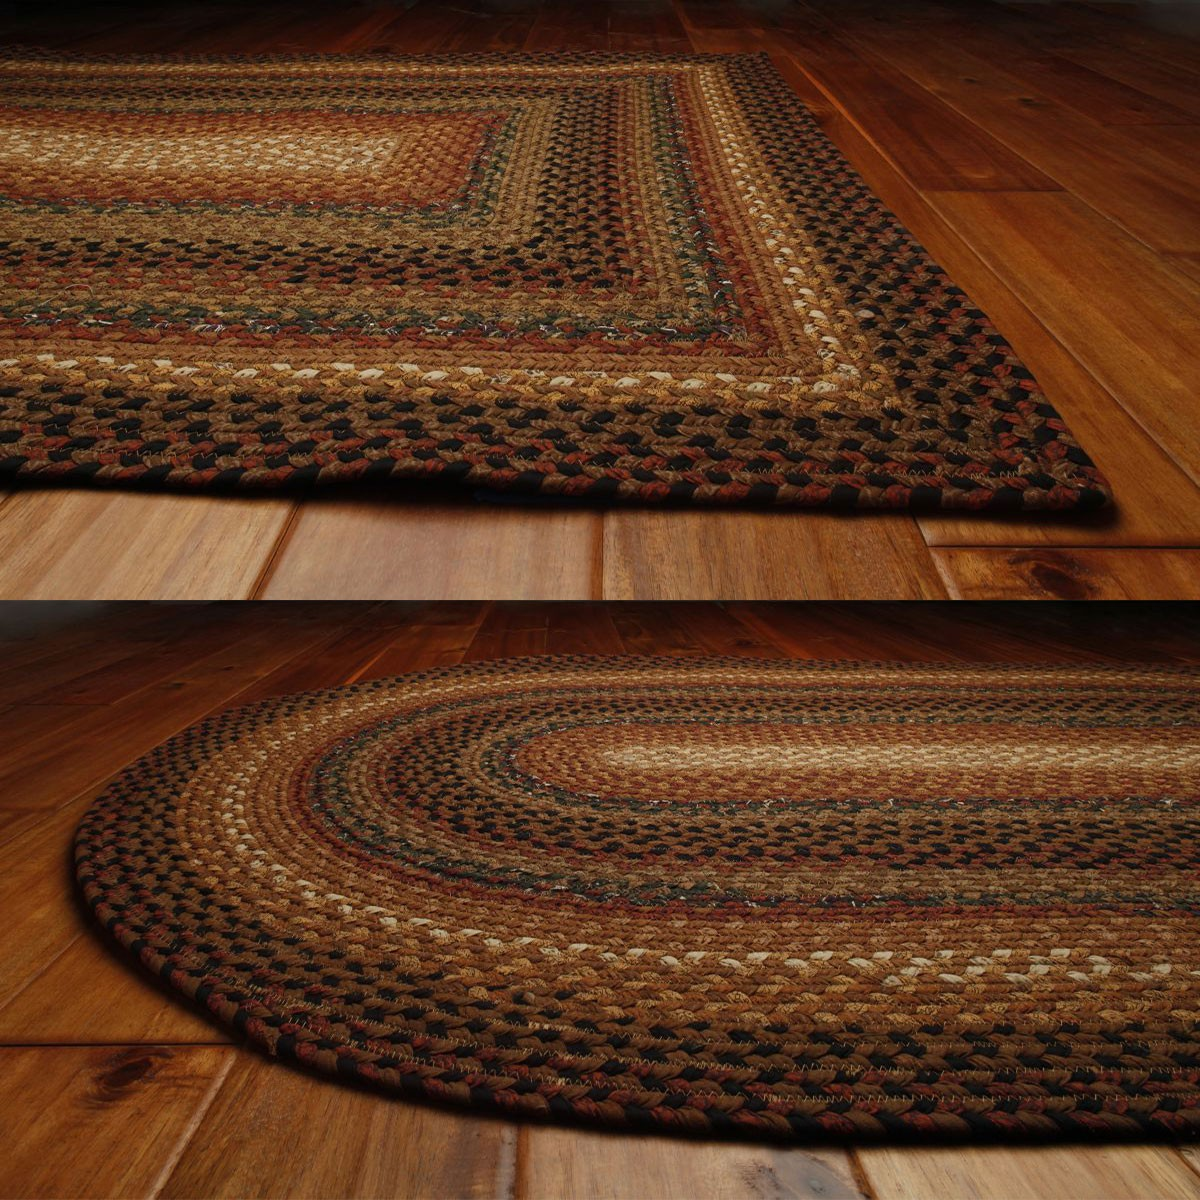 Peppercorn Cotton Braided Rugs